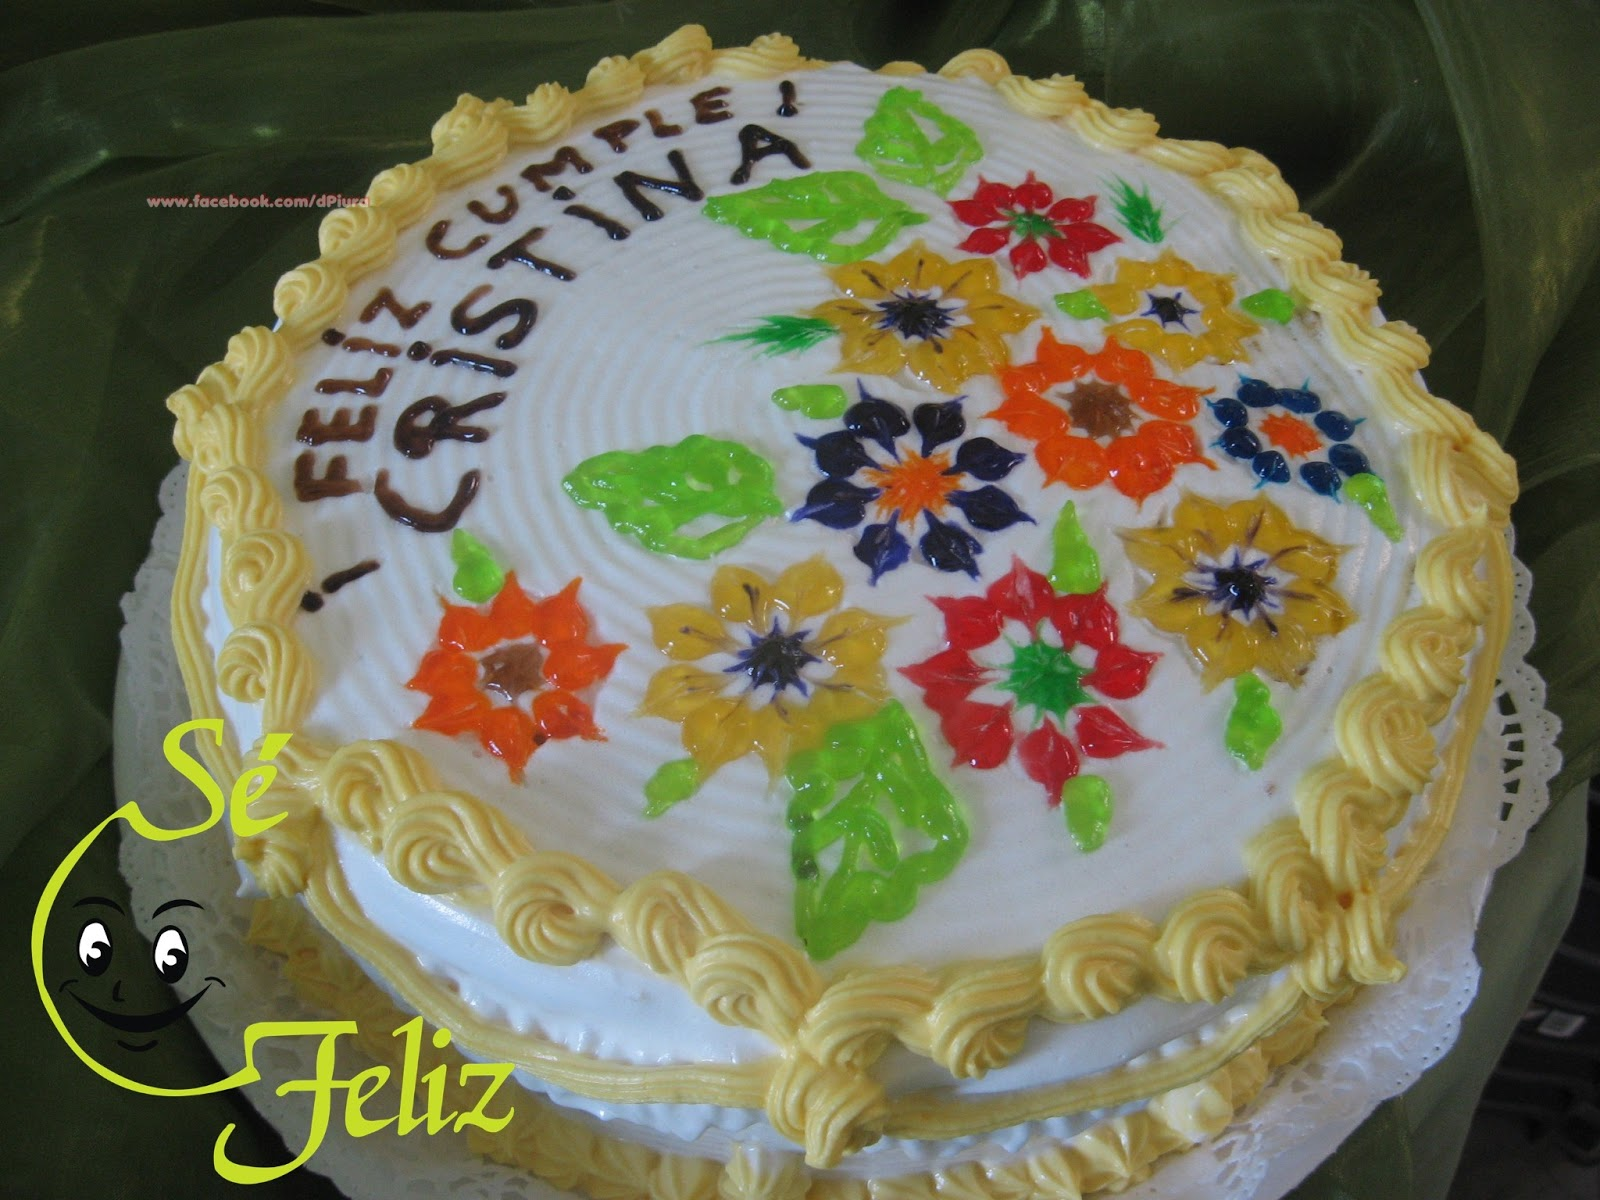 SÉ FELIZ: Tortas decoradas con merengue